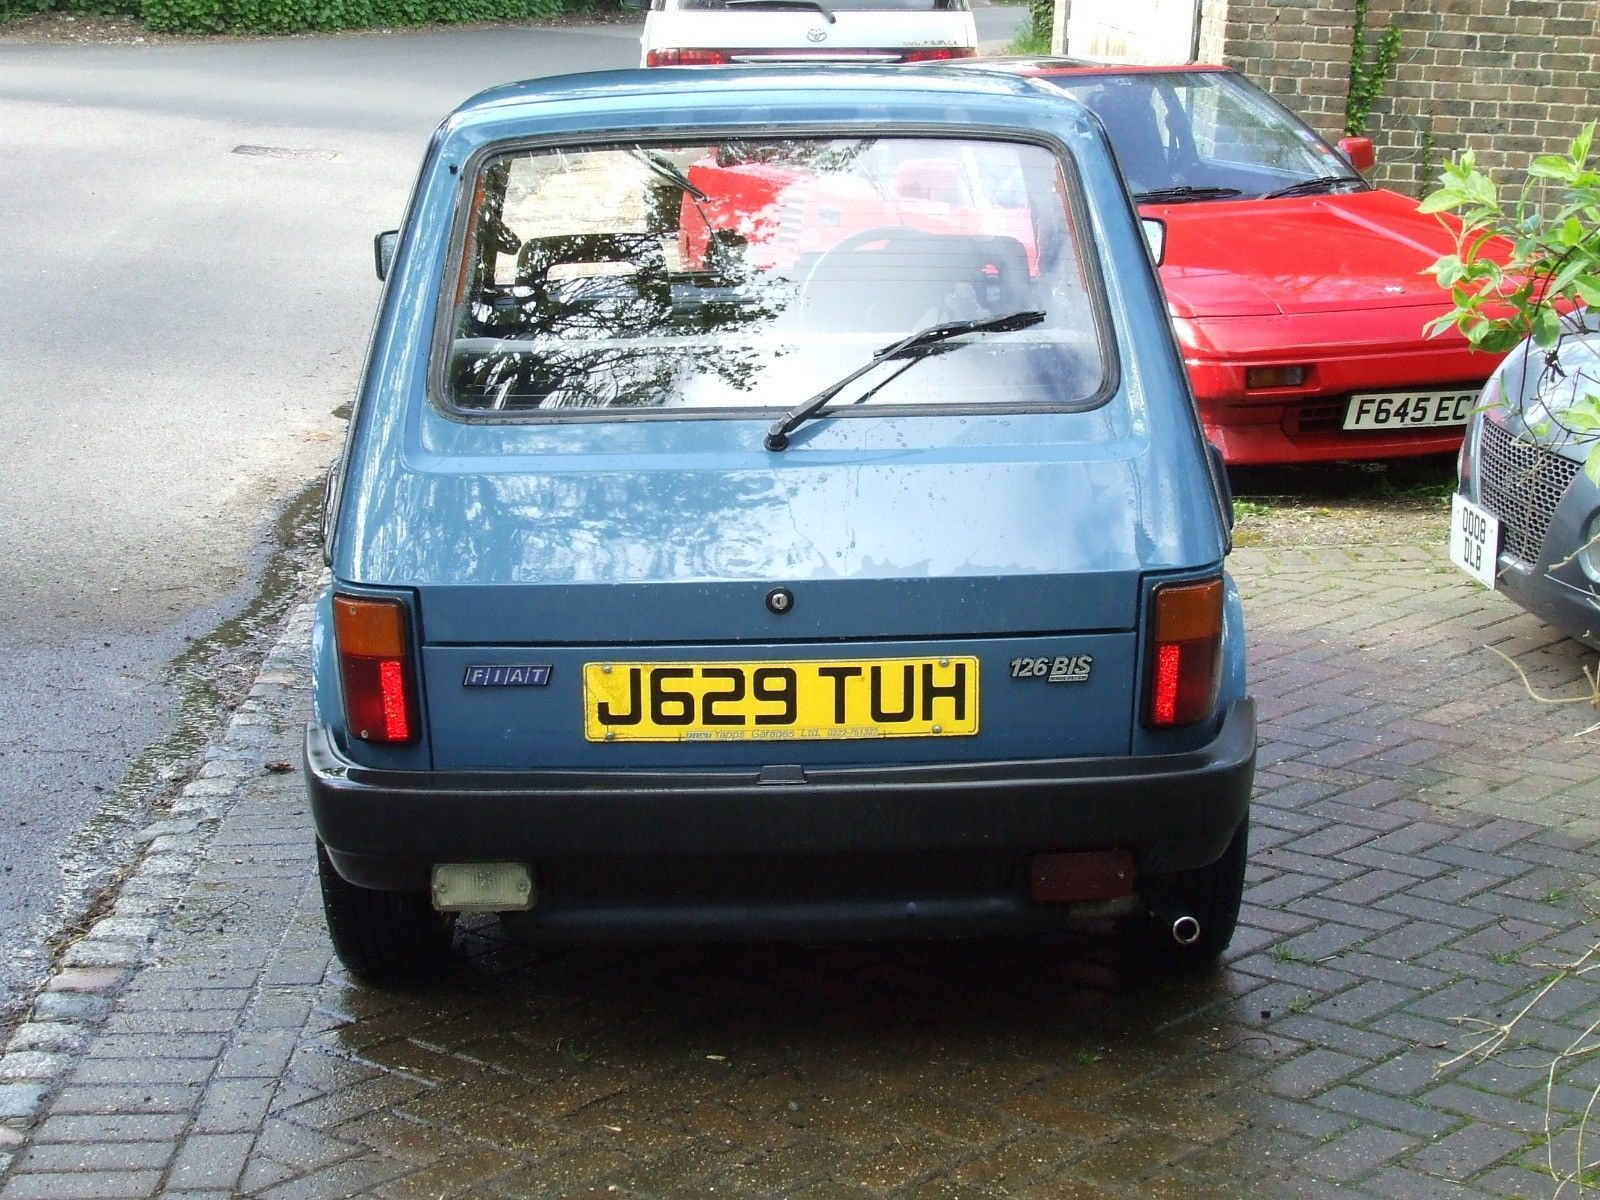 Fiat 126 Bis With Images Fiat 126 Fiat European Cars